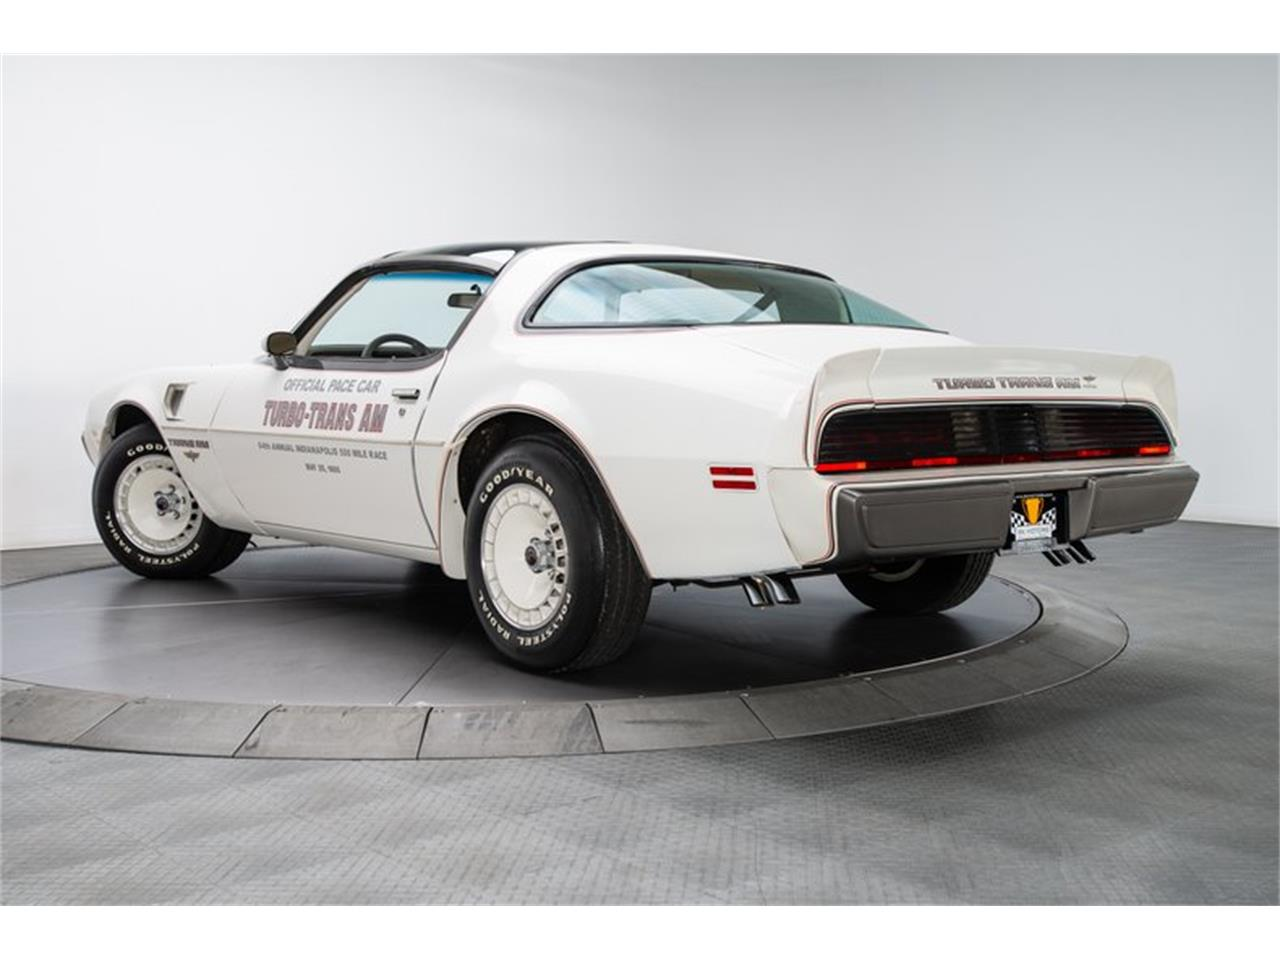 1980 Pontiac Firebird Trans Am Turbo Indy Pace Car Edition for sale in Charlotte, NC – photo 24